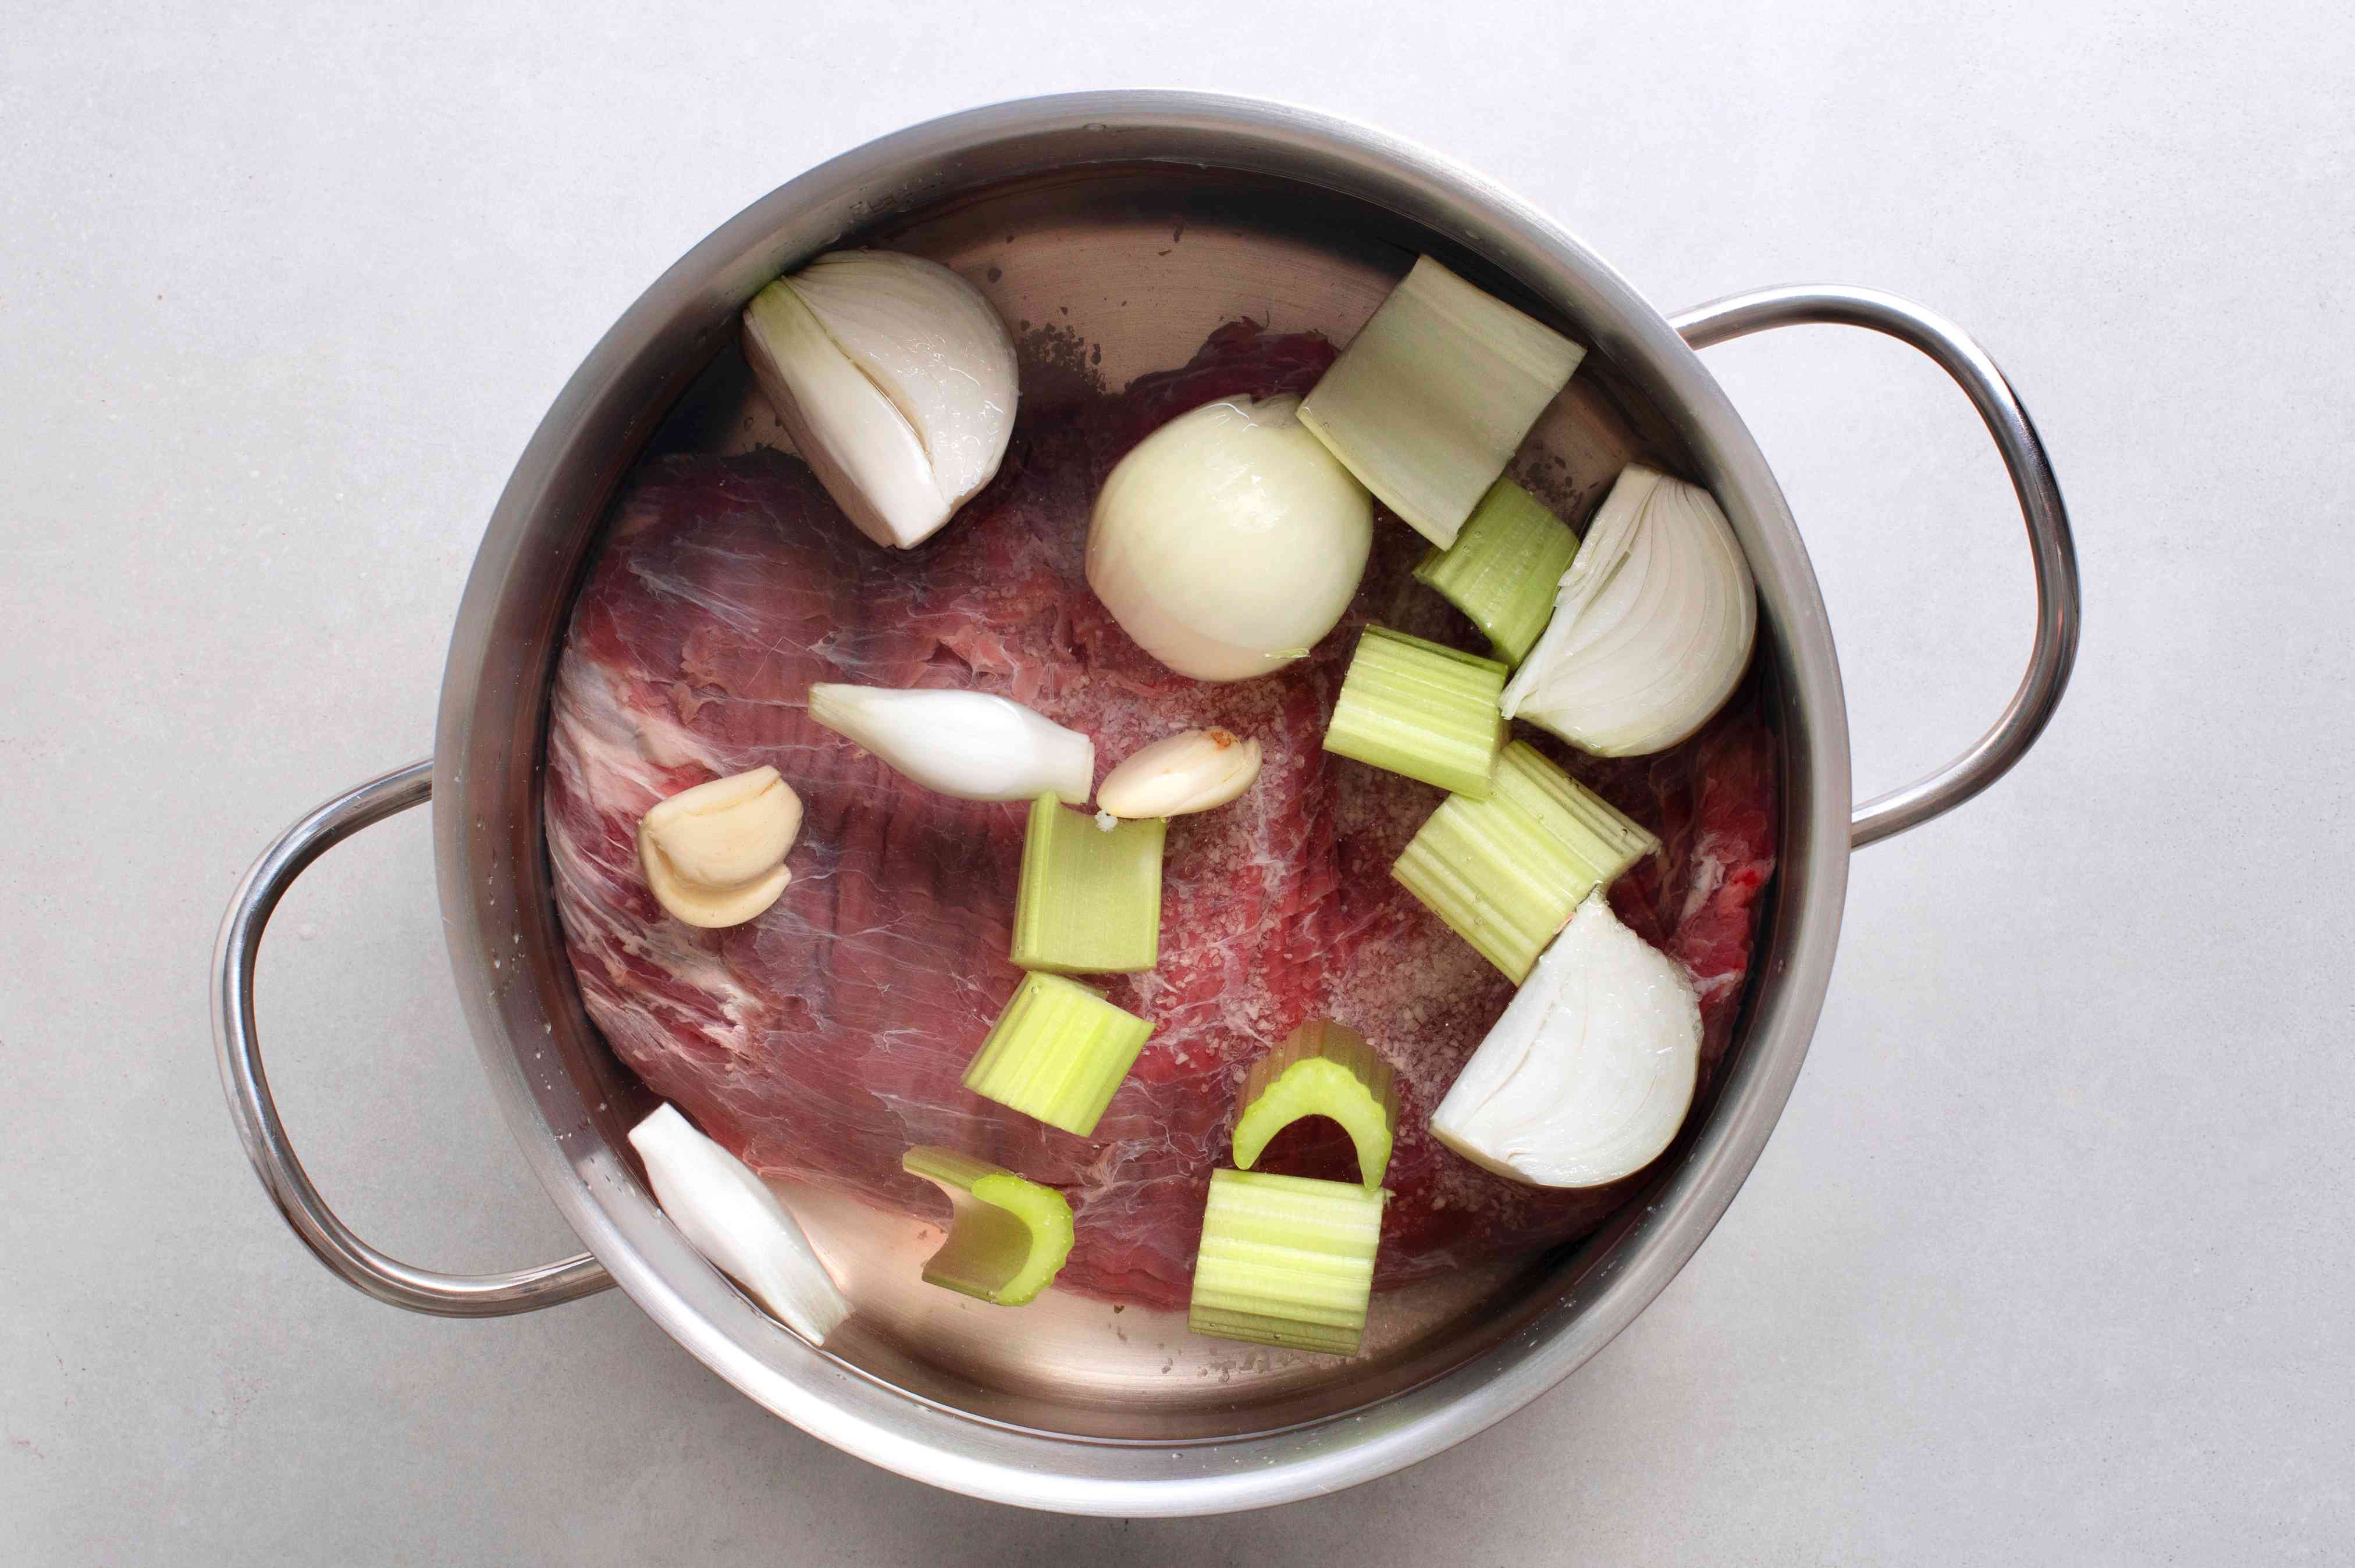 Add the quartered onion, smashed garlic, chopped celery, and salt to the steak in the pot